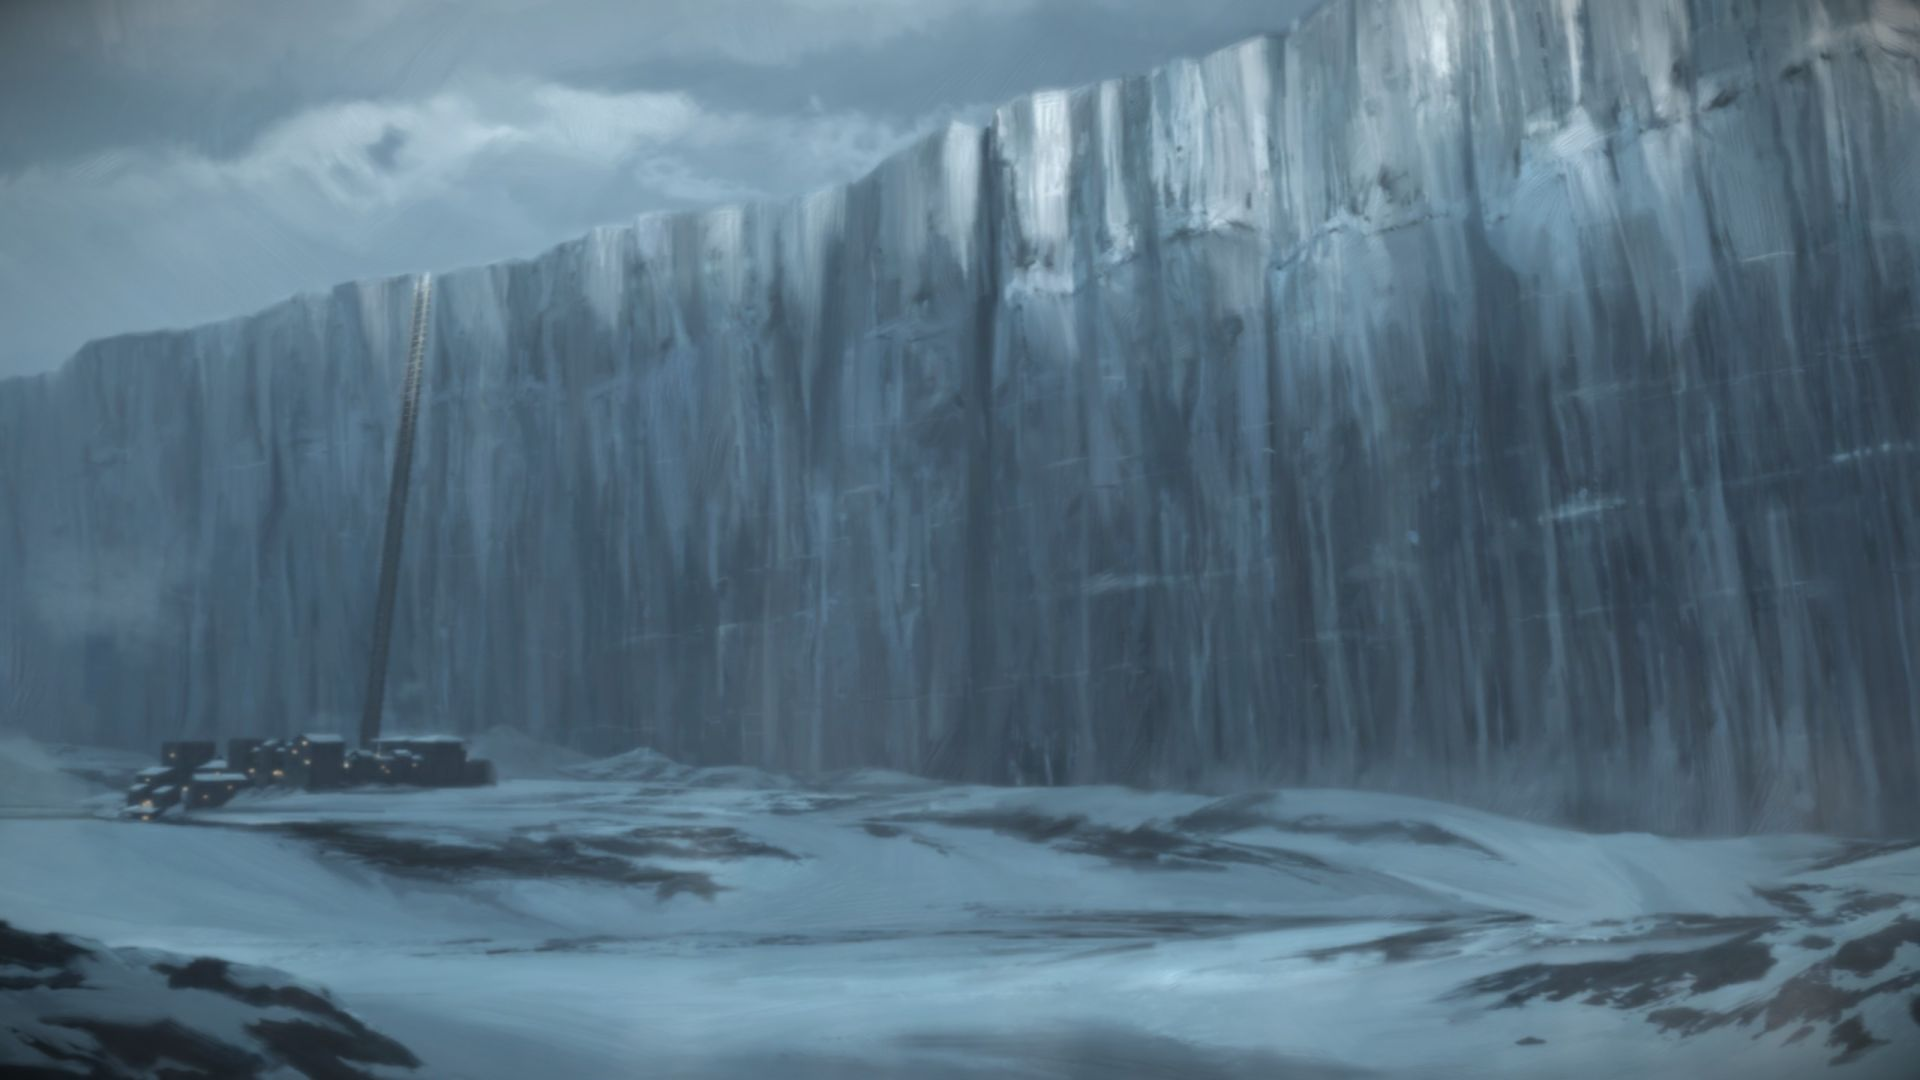 Game of Thrones landscape art wall